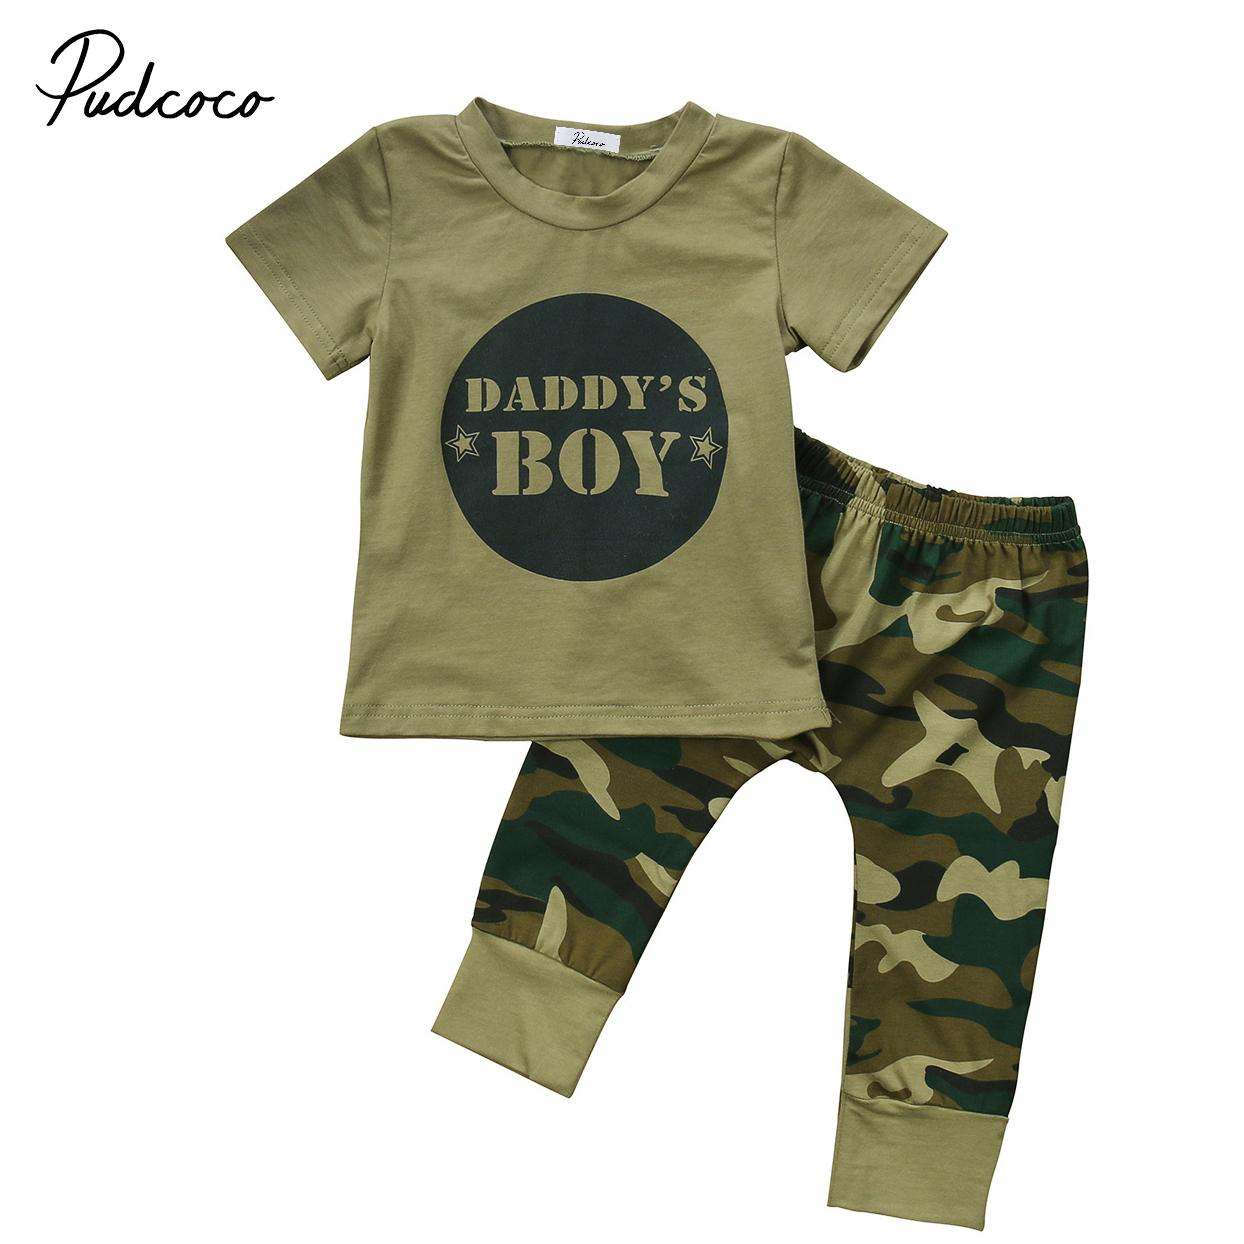 Summer Infant Baby Boys Camo Short Sleeve Tops T-shirt Shorts Outfit Set Clothes